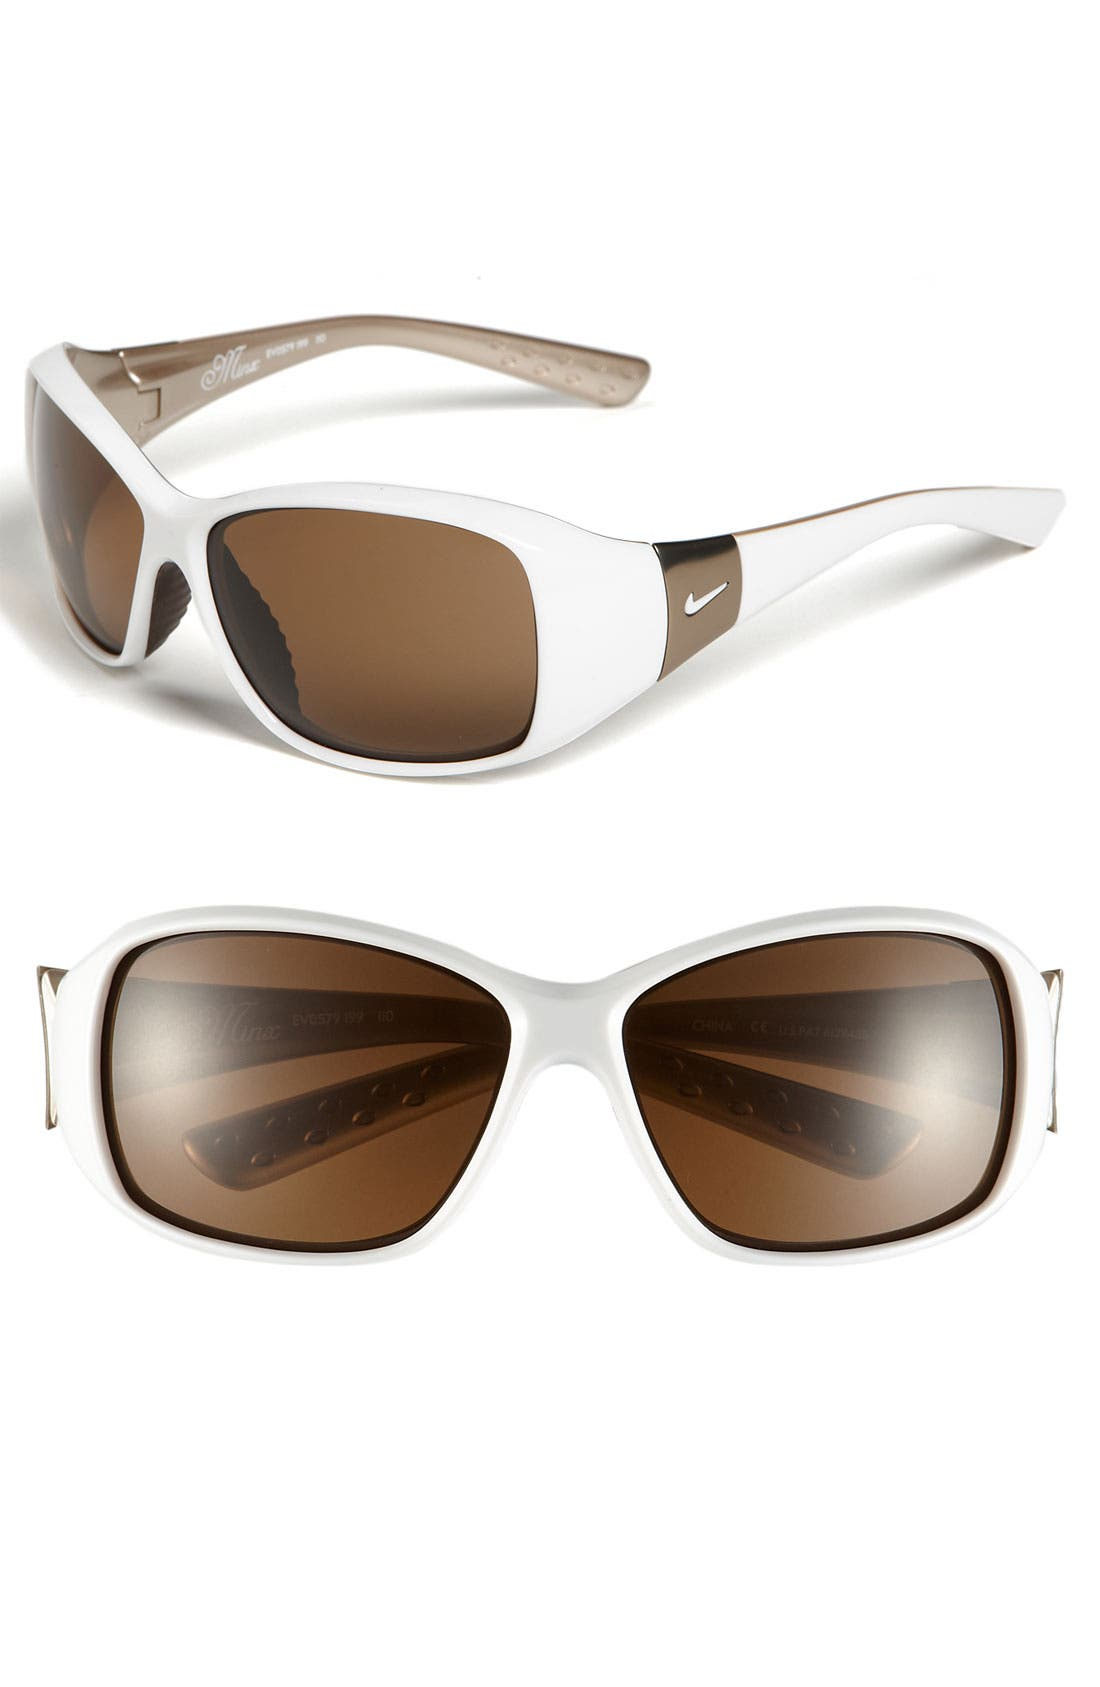 Alternate Image 1 Selected - Nike 'Minx' 59mm Sunglasses